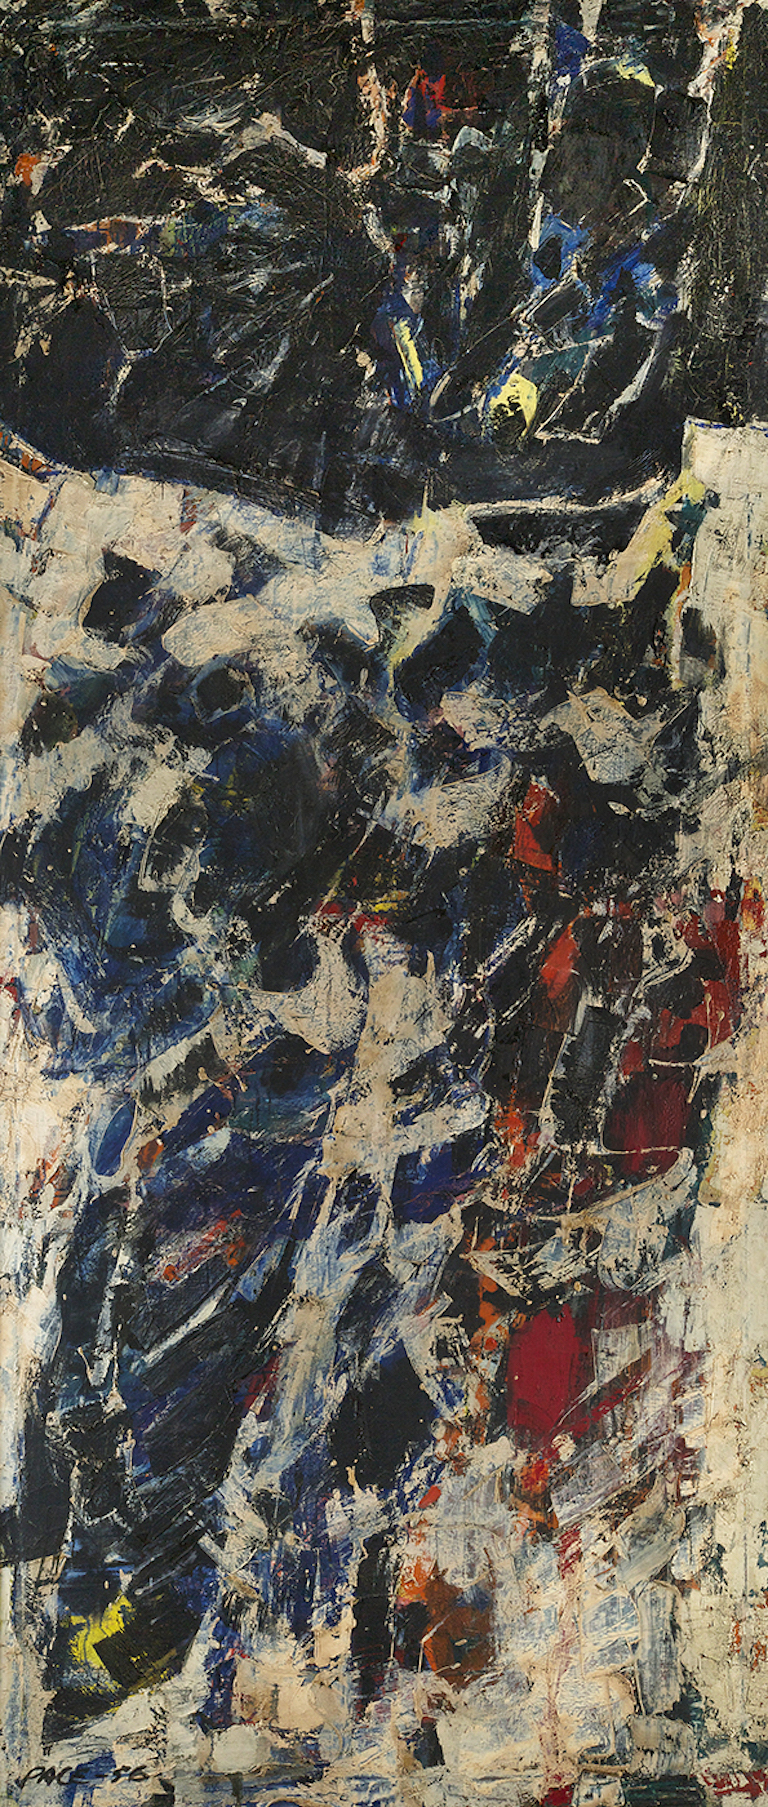 Untitled (56-14), 1956                                      Oil on Canvas 84 x 36 in.